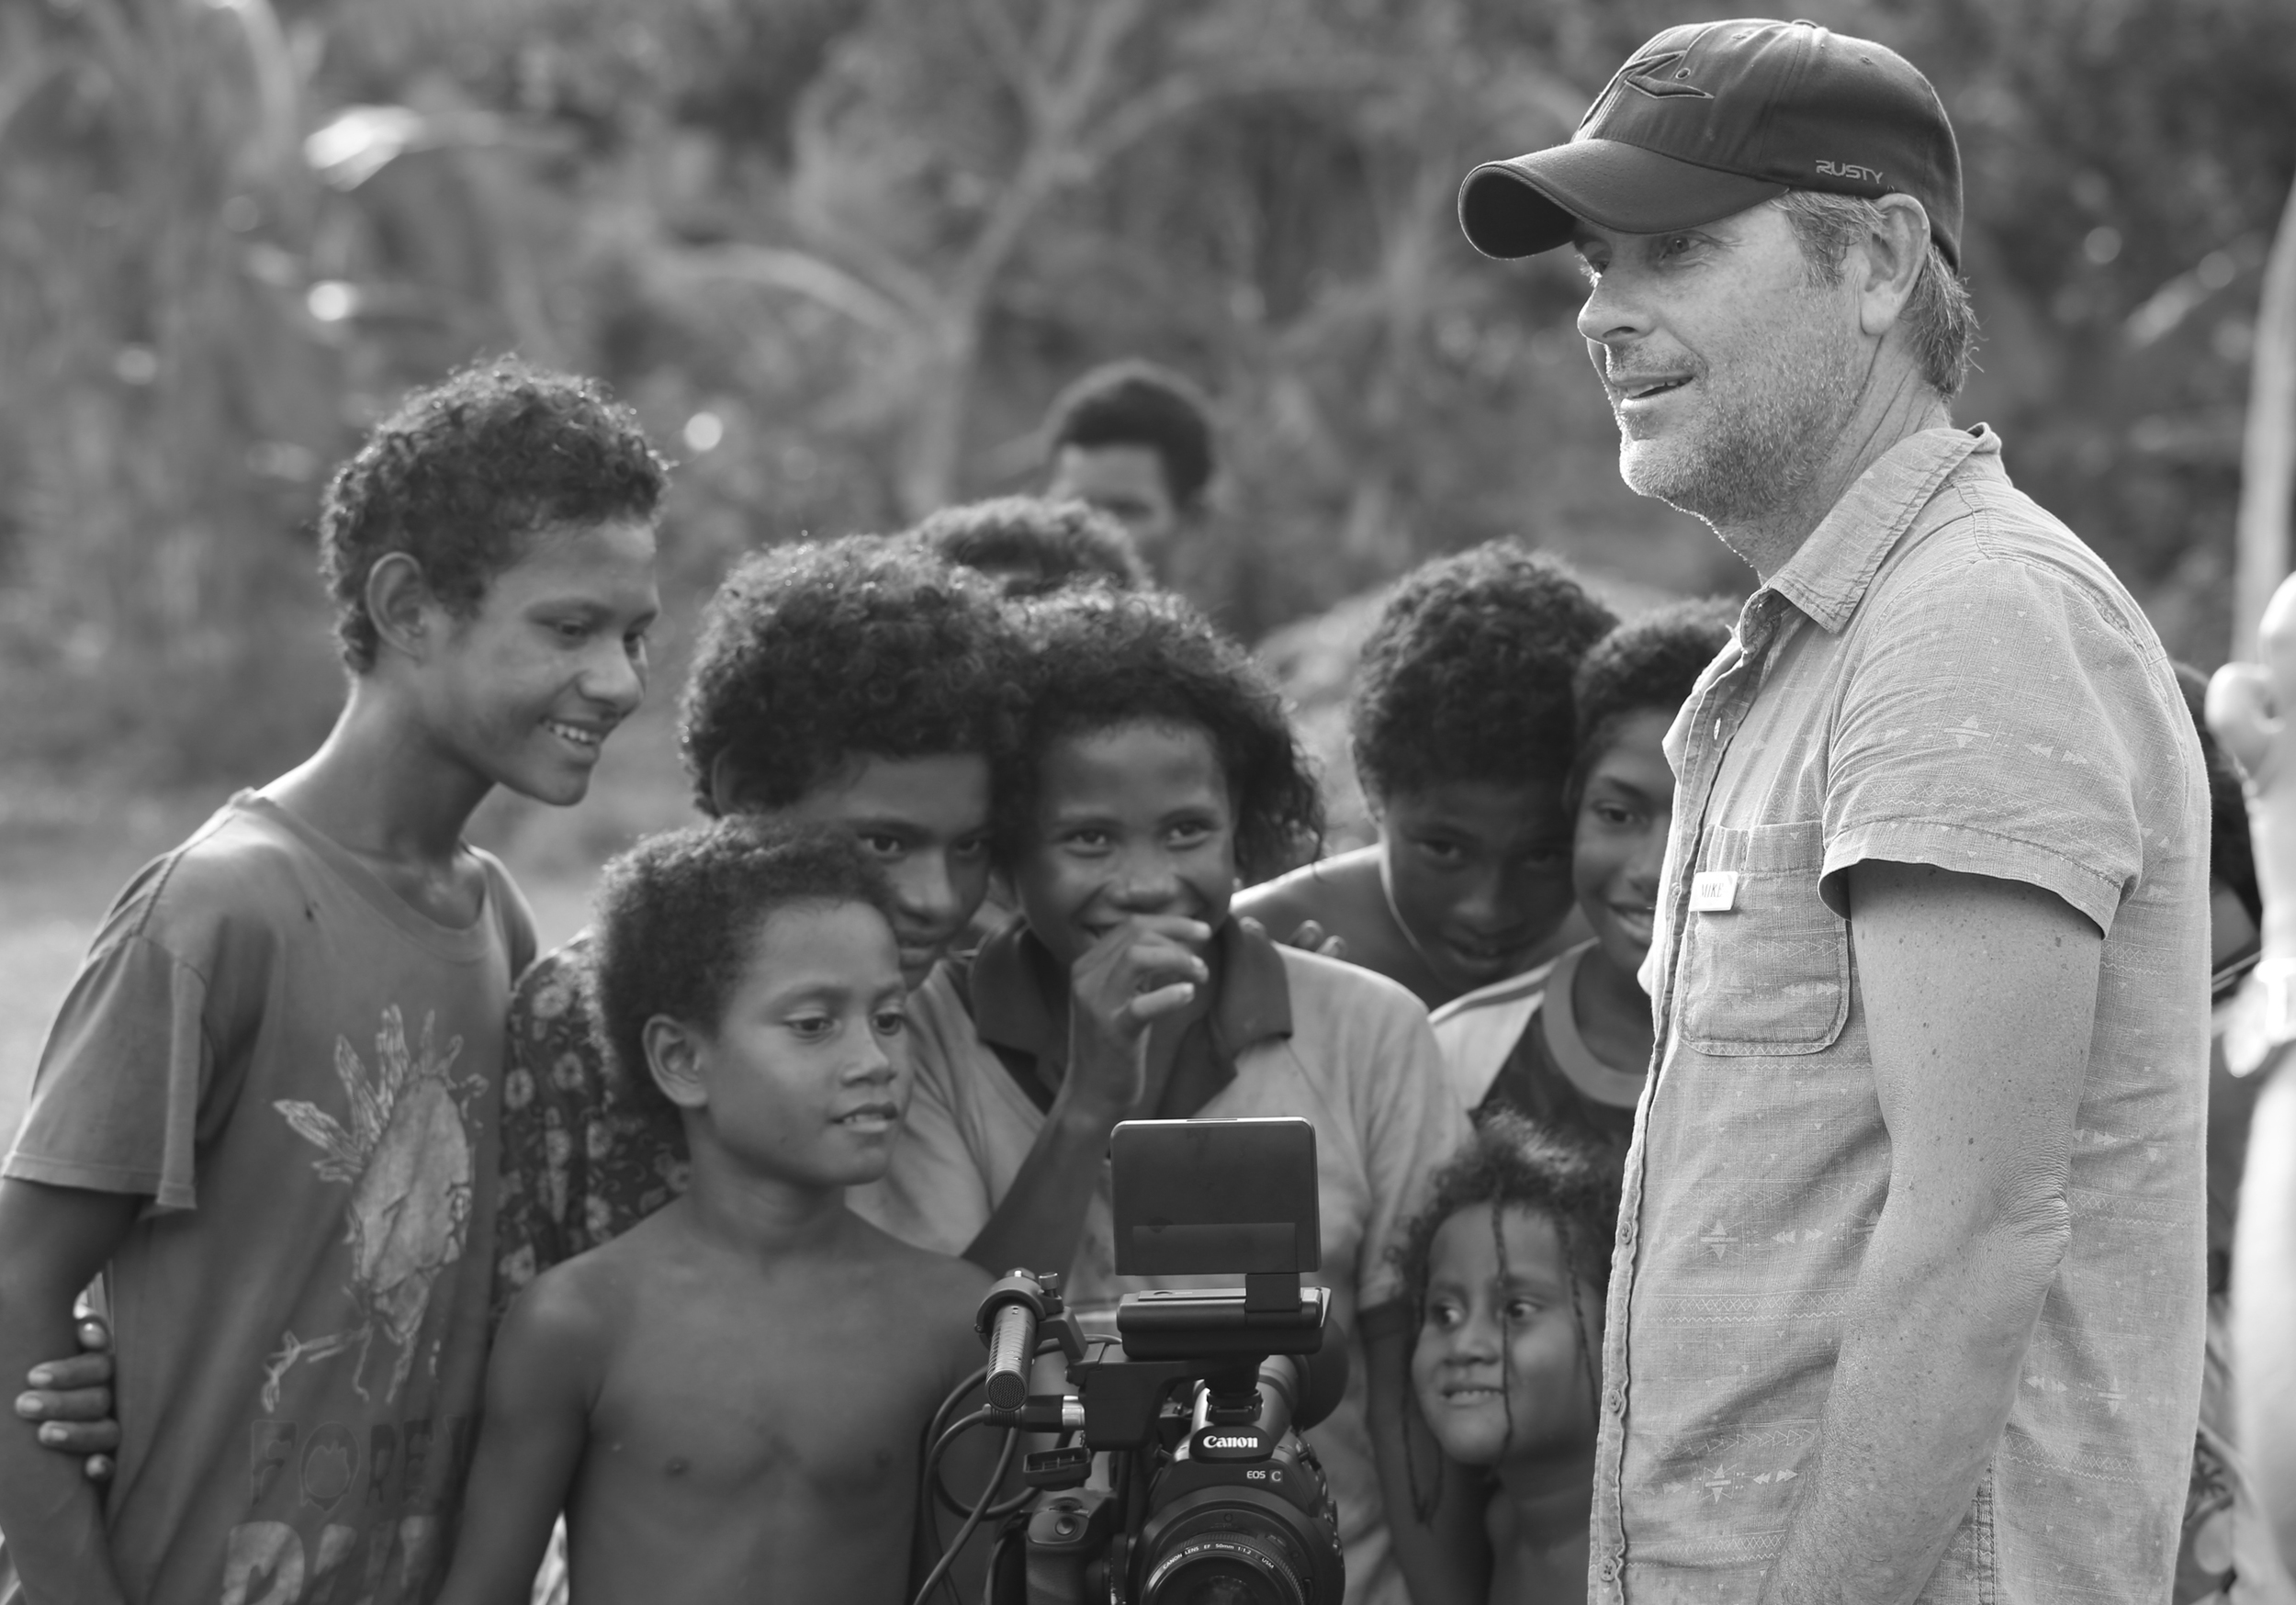 Mike entertaining the locals with his footage.